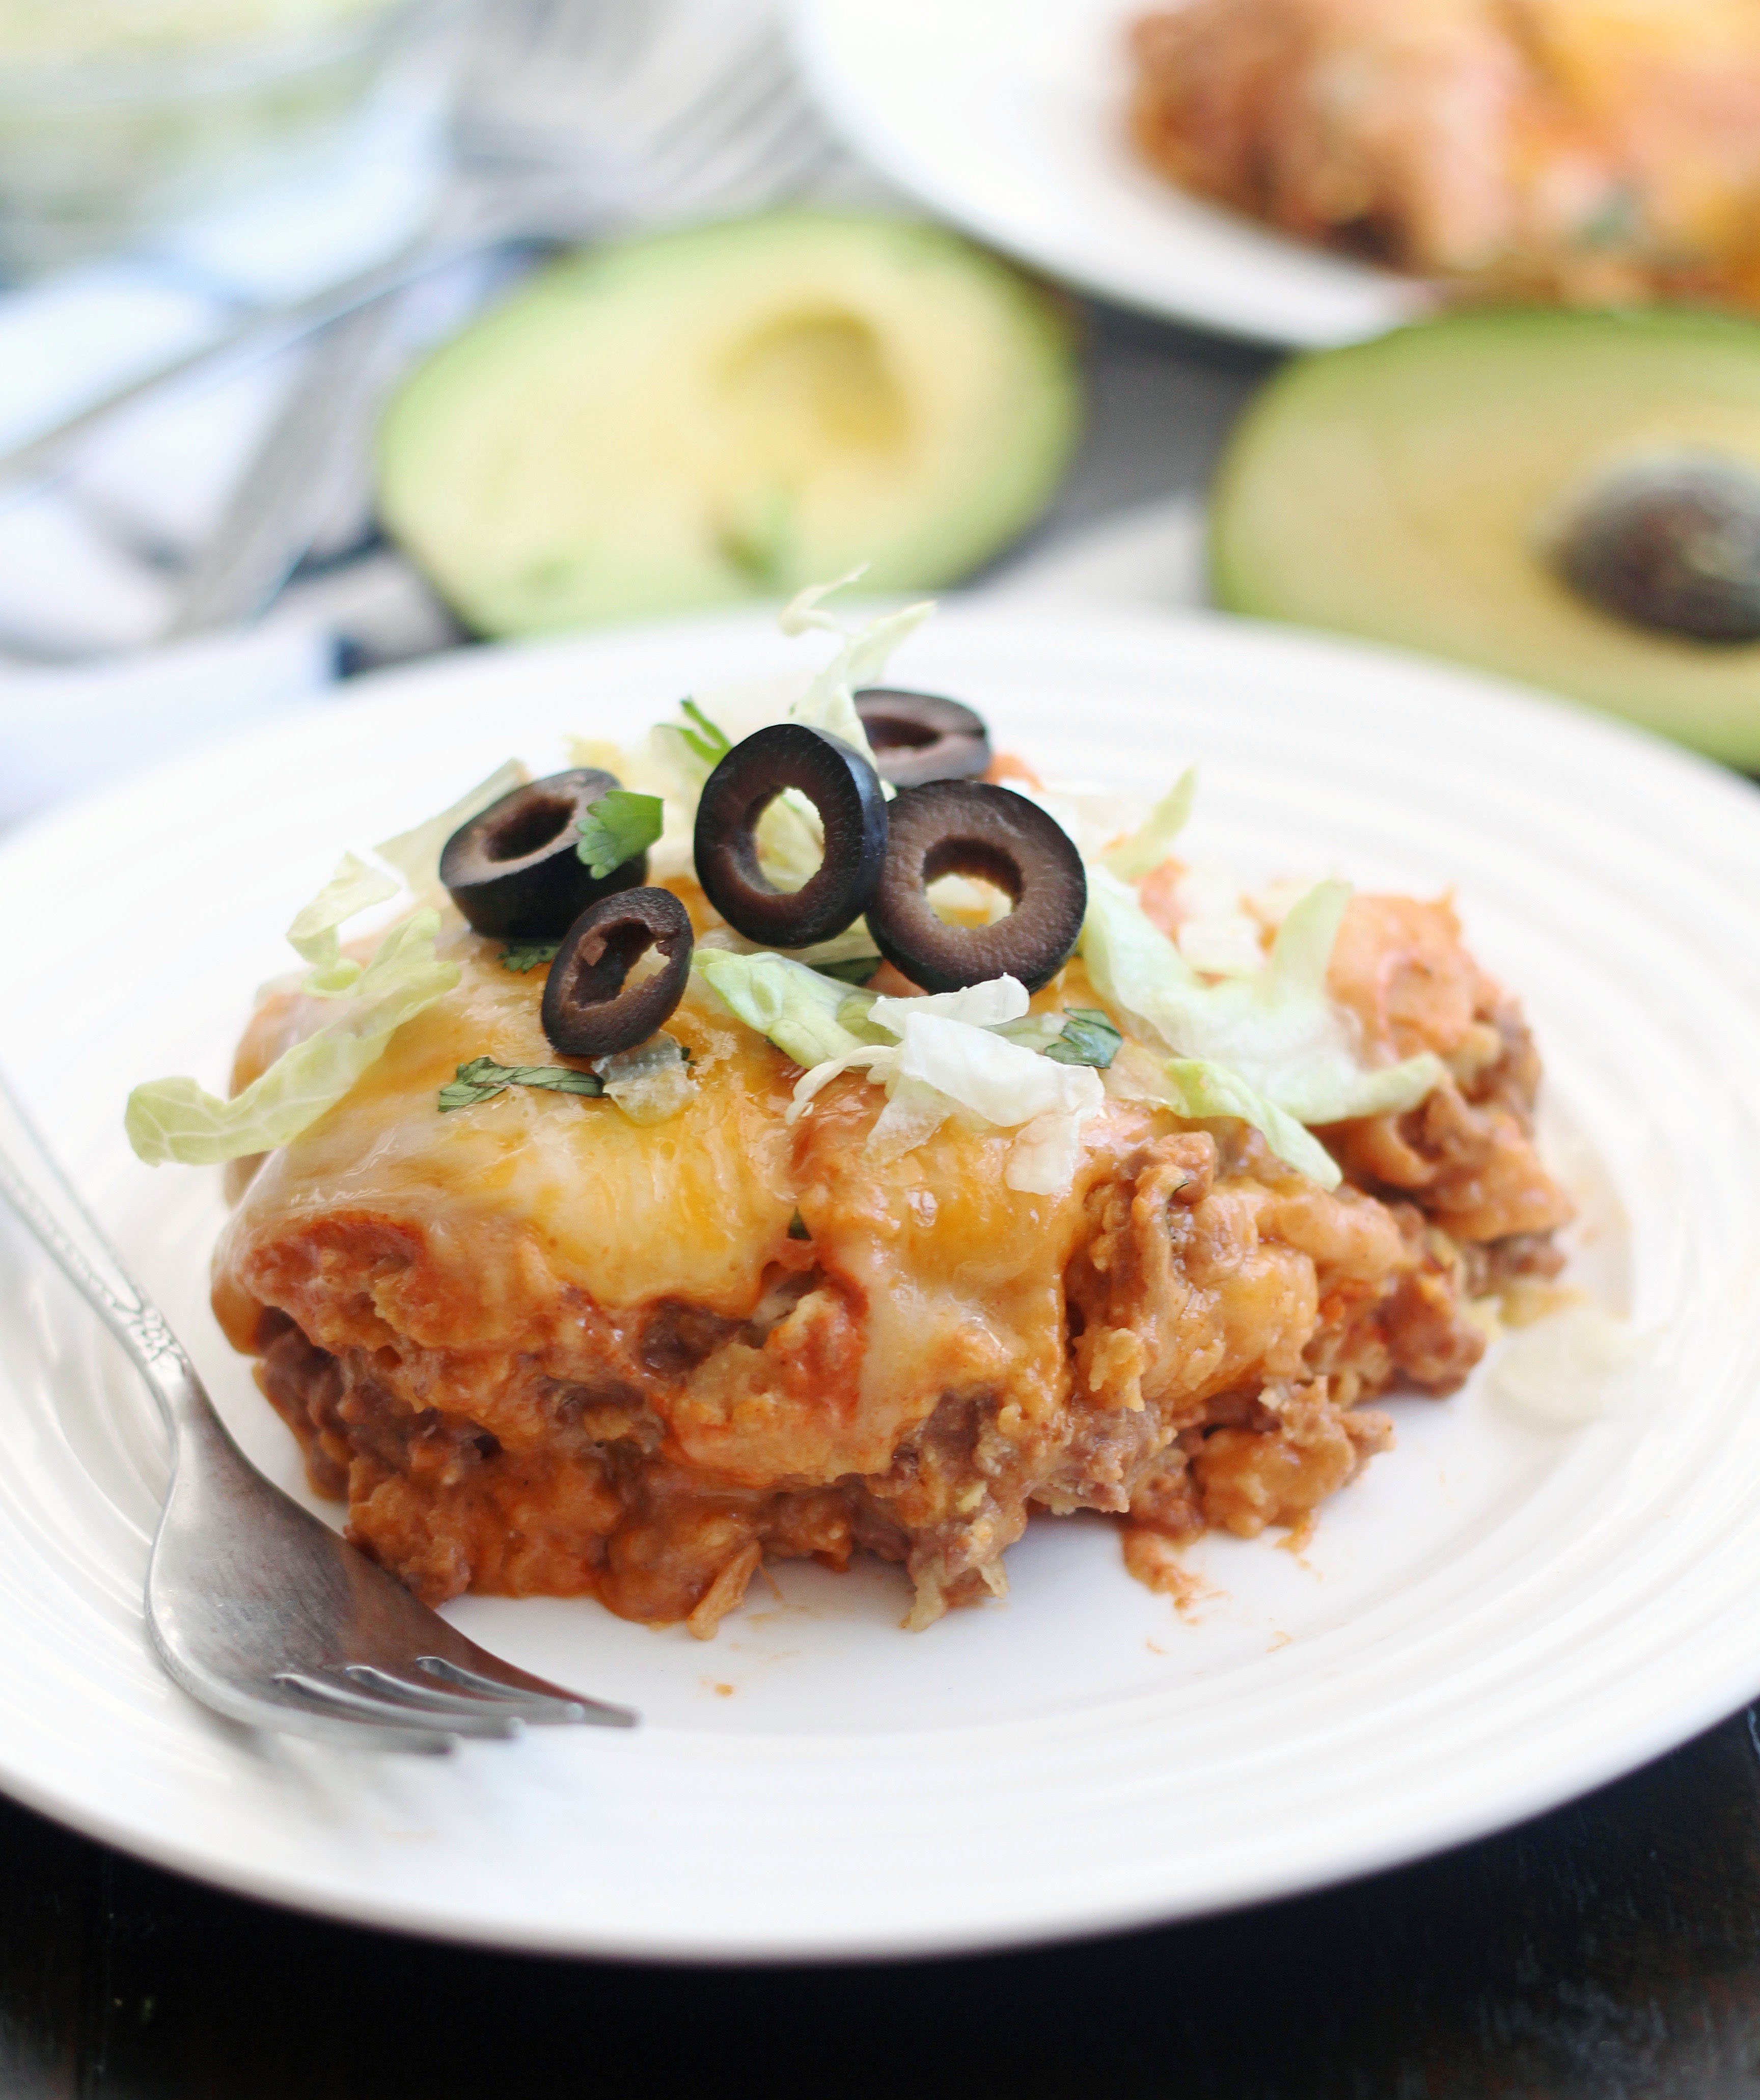 Plate of slow cooker ground beef enchilada casserole